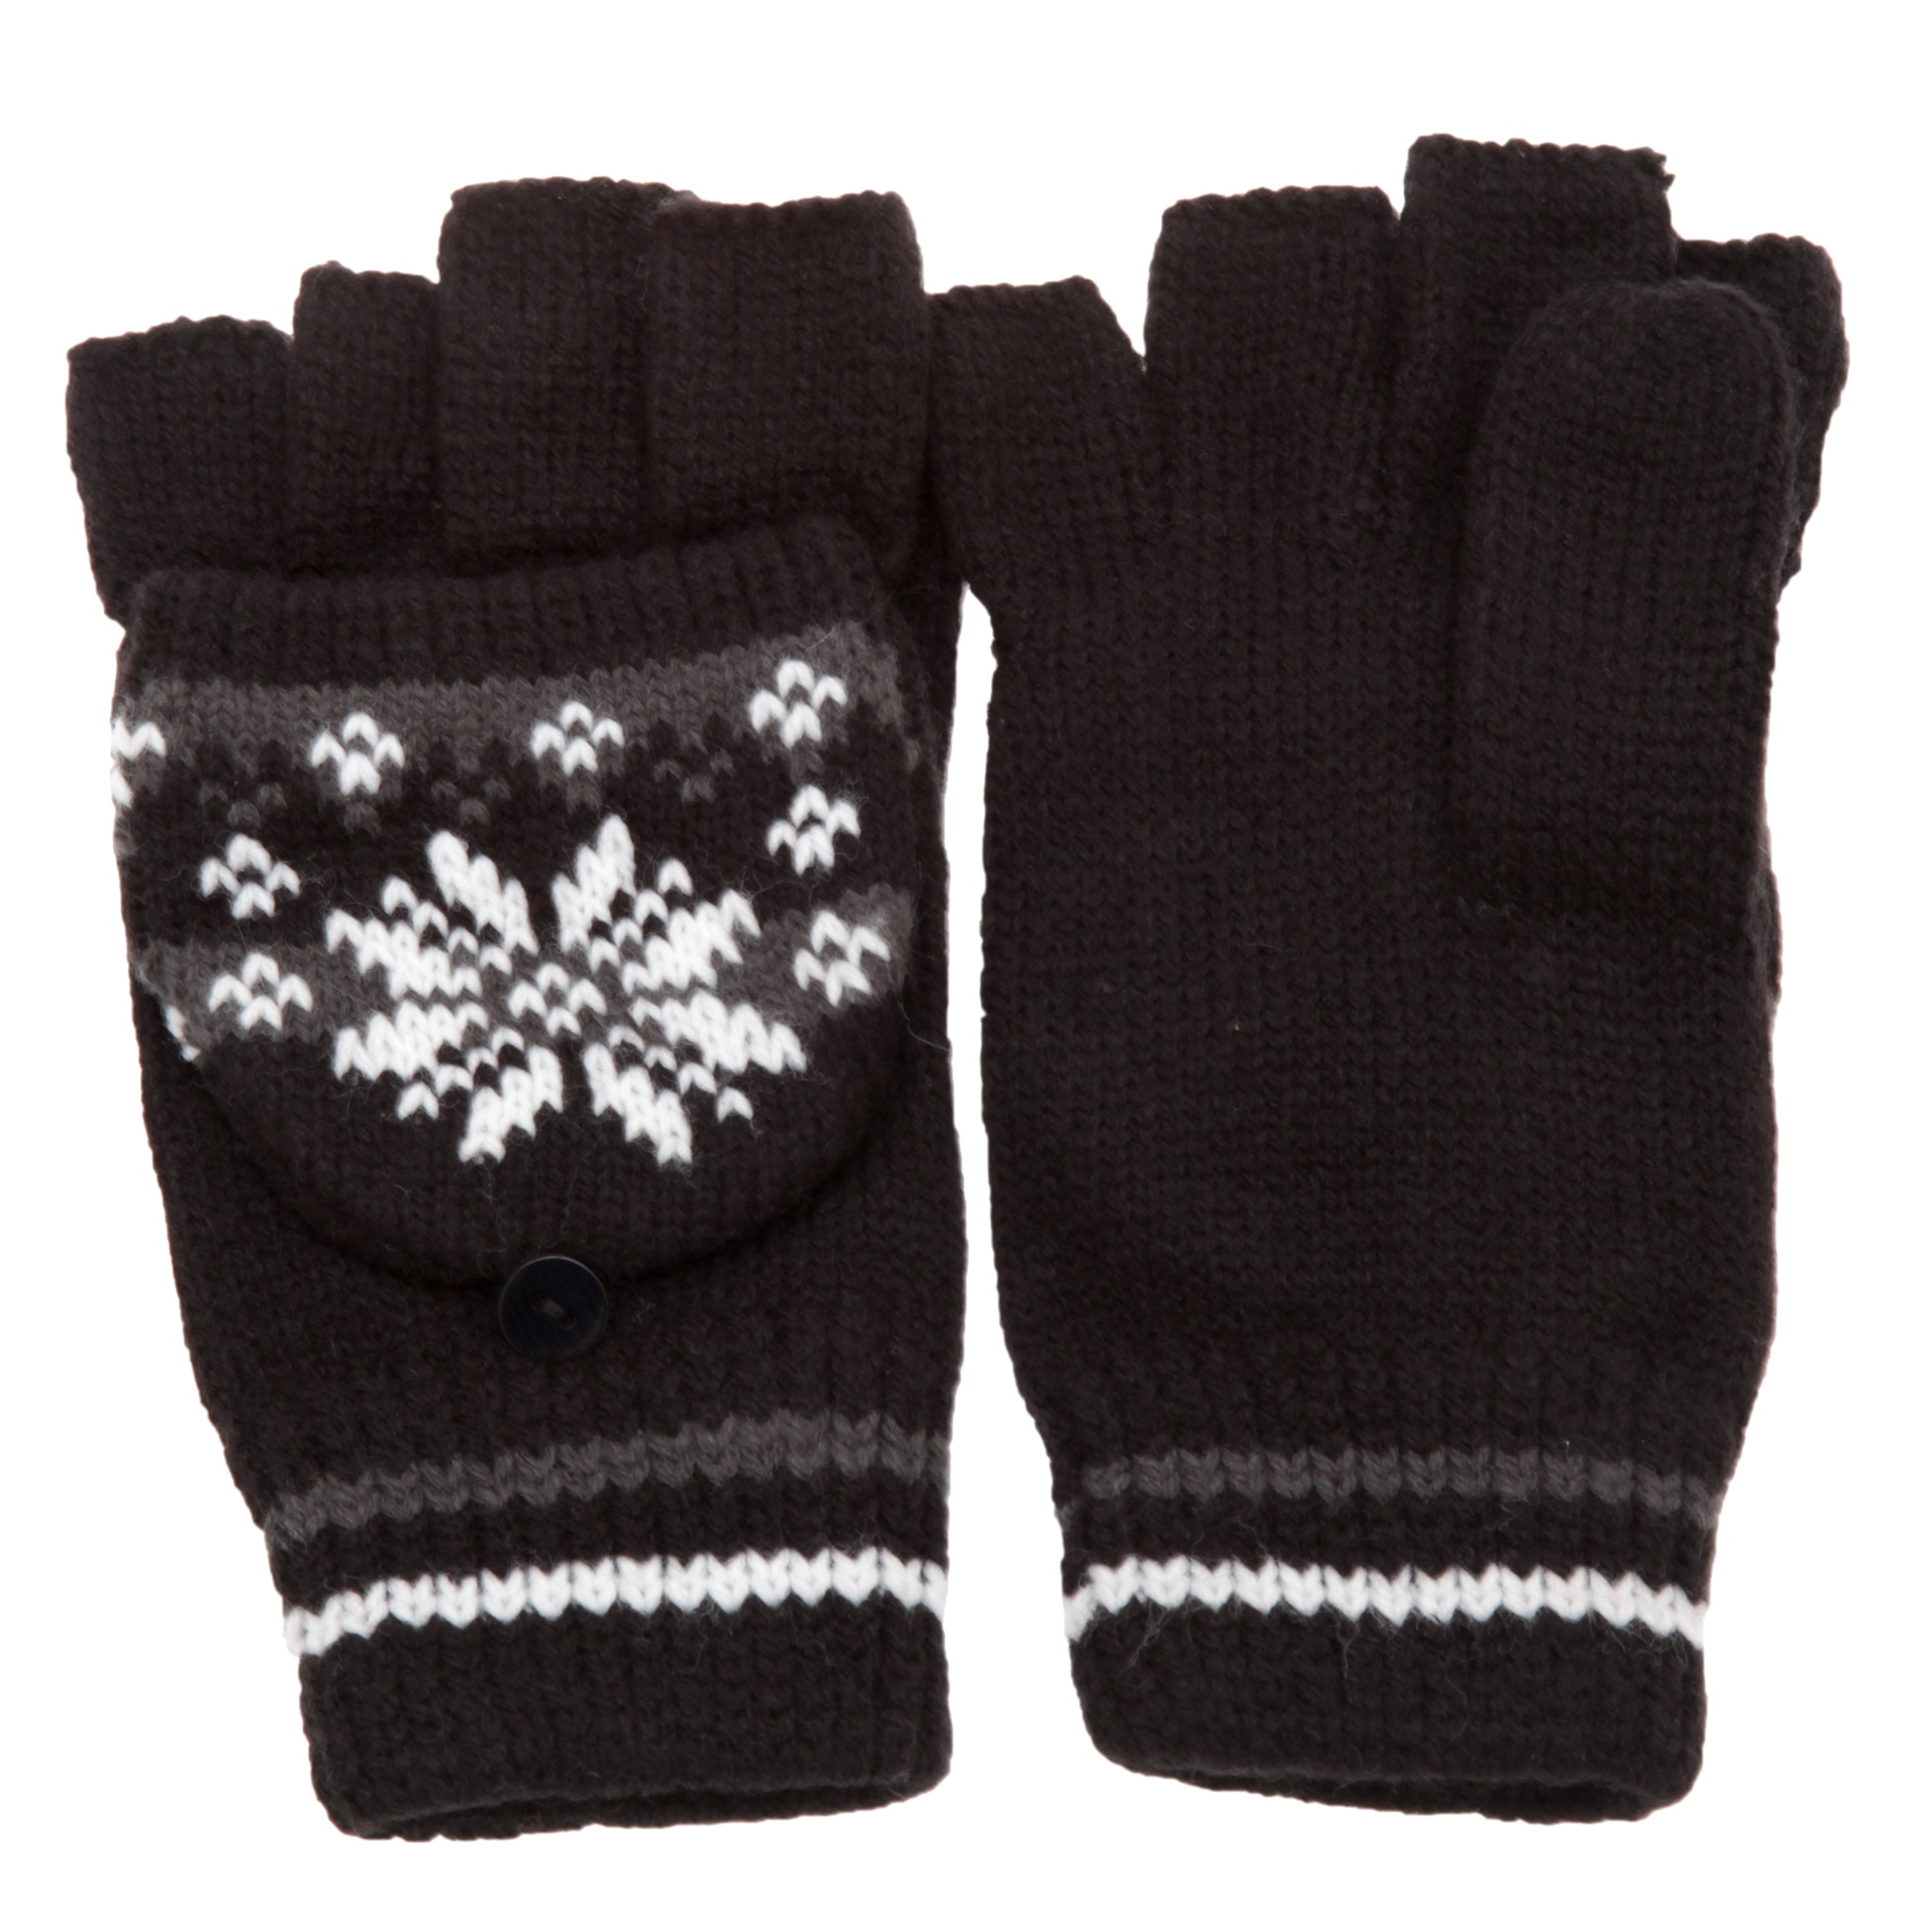 See all results for women's knitted gloves. Cozy Design Women's Knitted Gloves with Roll Up Cuffs for Winter. by Cozy Design. $ - $ $ 6 $ 12 99 Prime. FREE Shipping on eligible orders. Some colors are Prime eligible. out of 5 stars